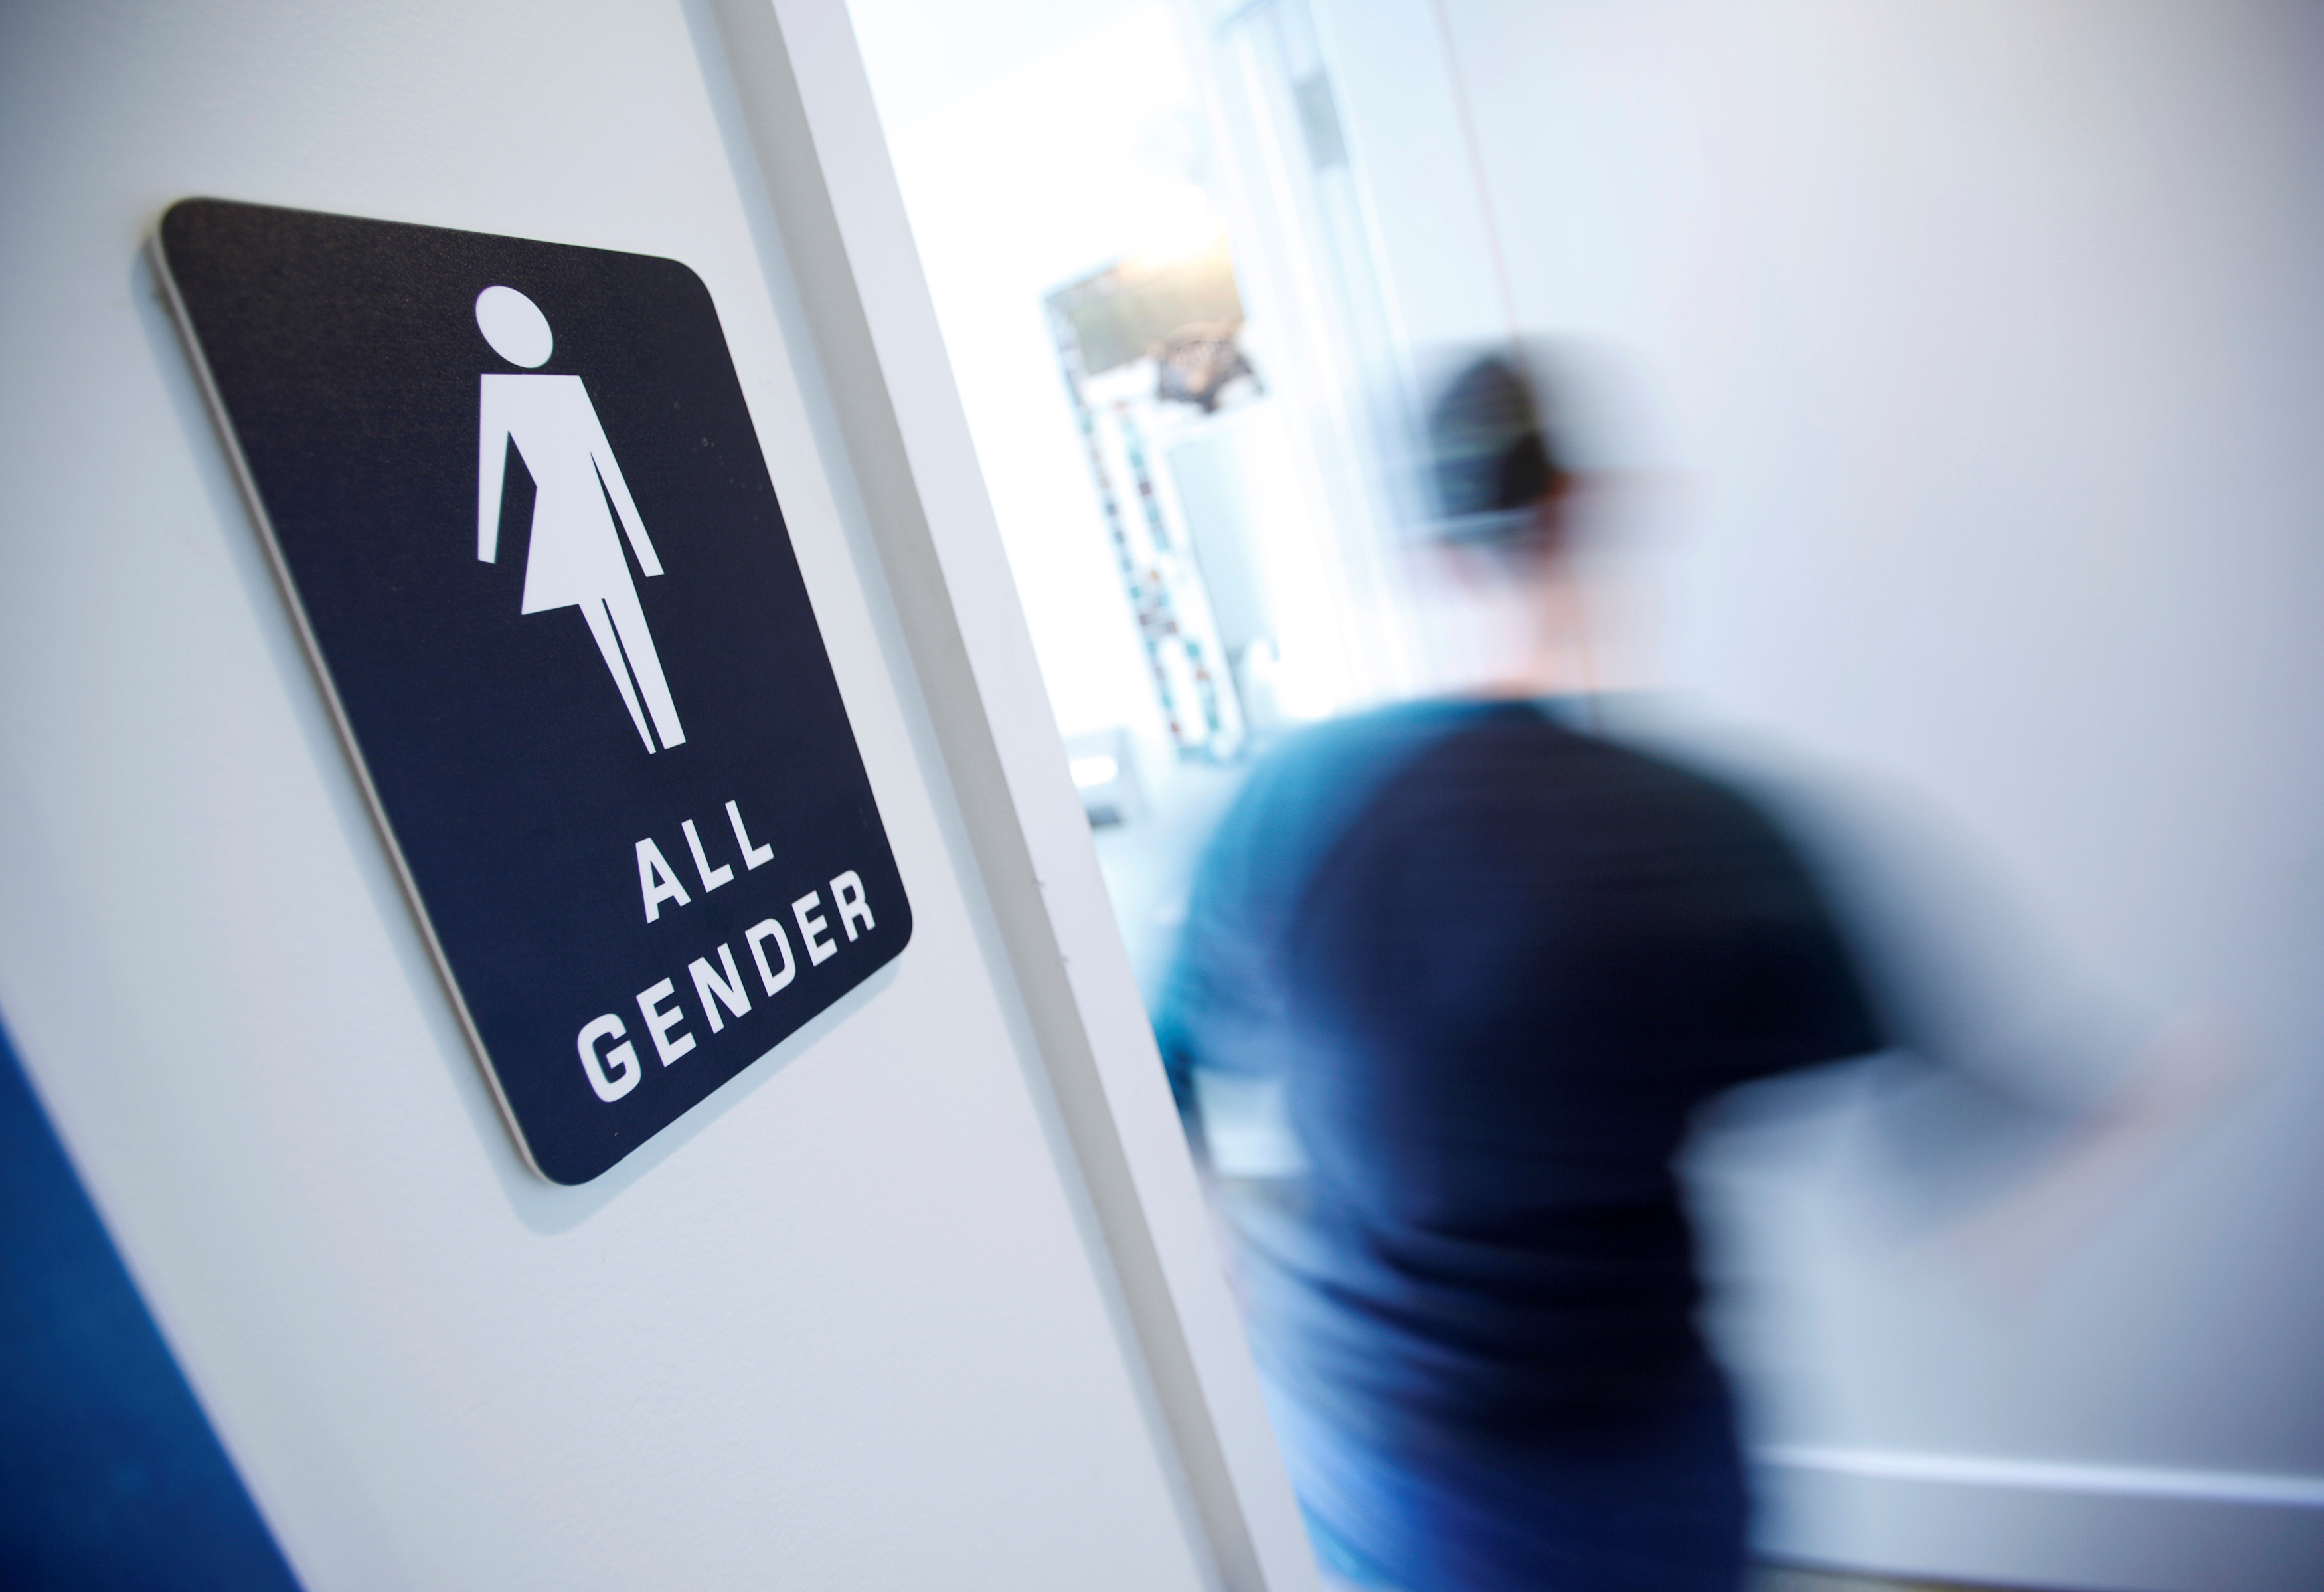 When A Transgender Person Uses A Public Bathroom, Who Is At Risk?